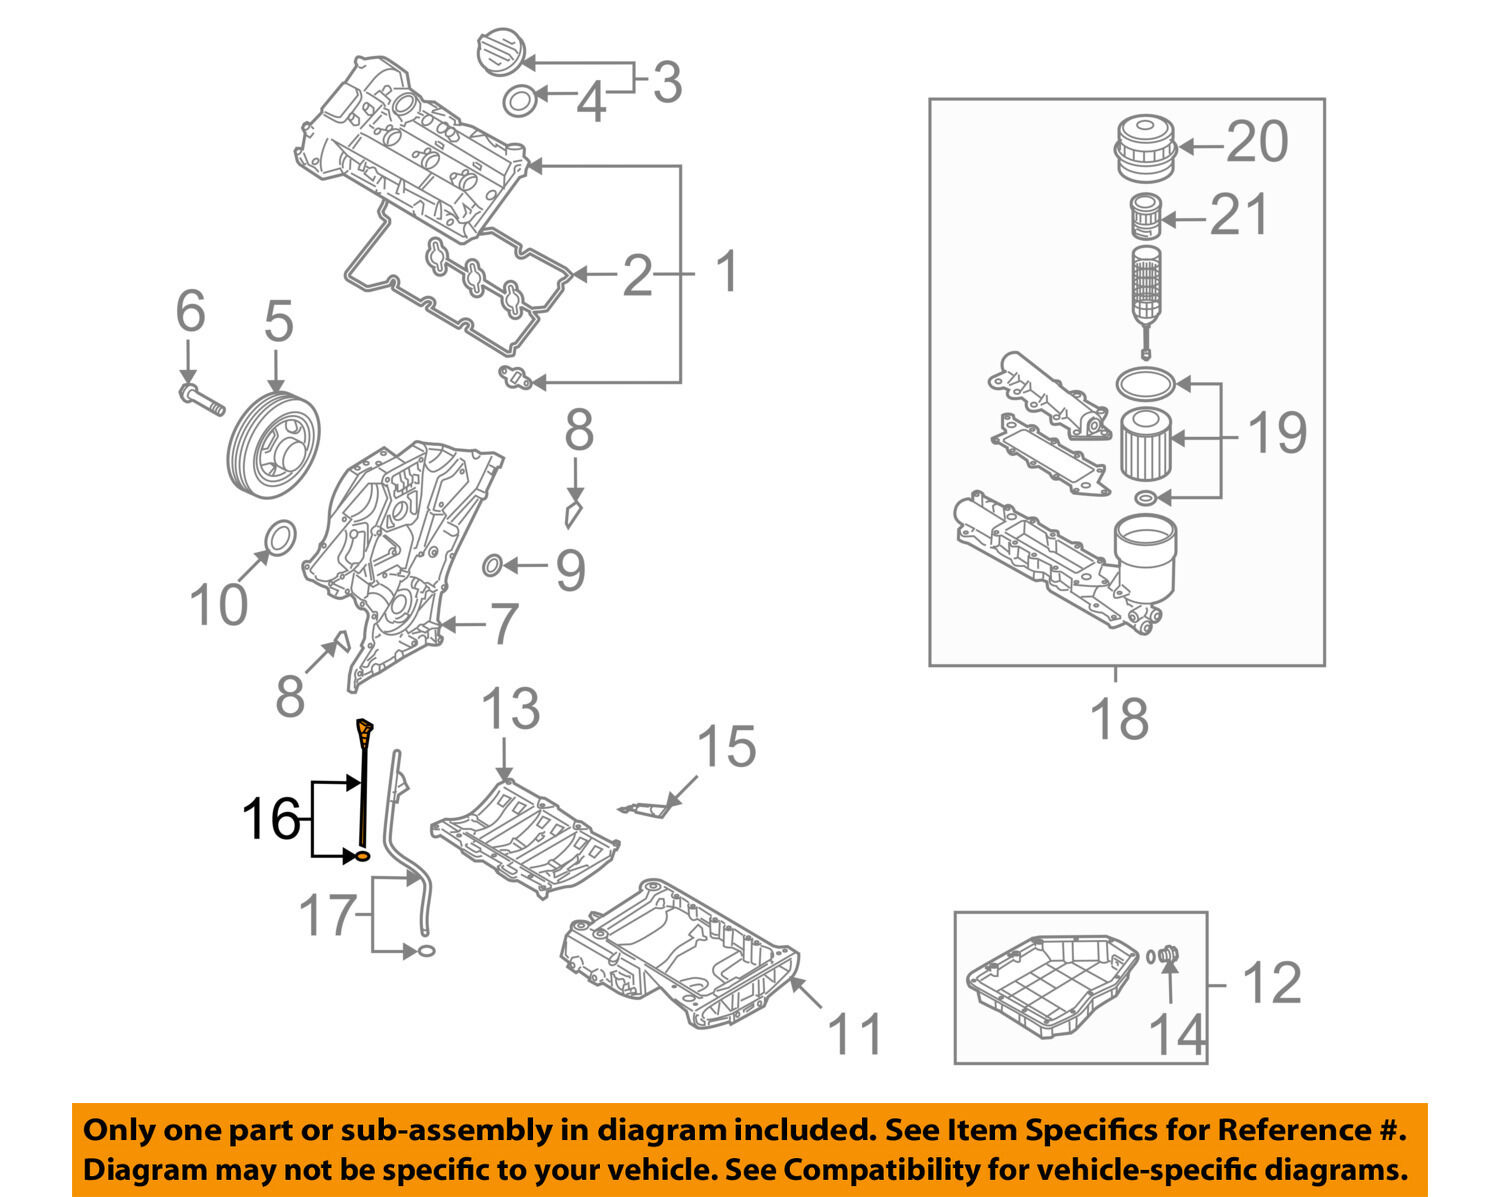 Hyundai Oem 06 10 Sonata Engine Oil Fluid Dipstick 266113c100 For Sale 2011 Genesis Diagram